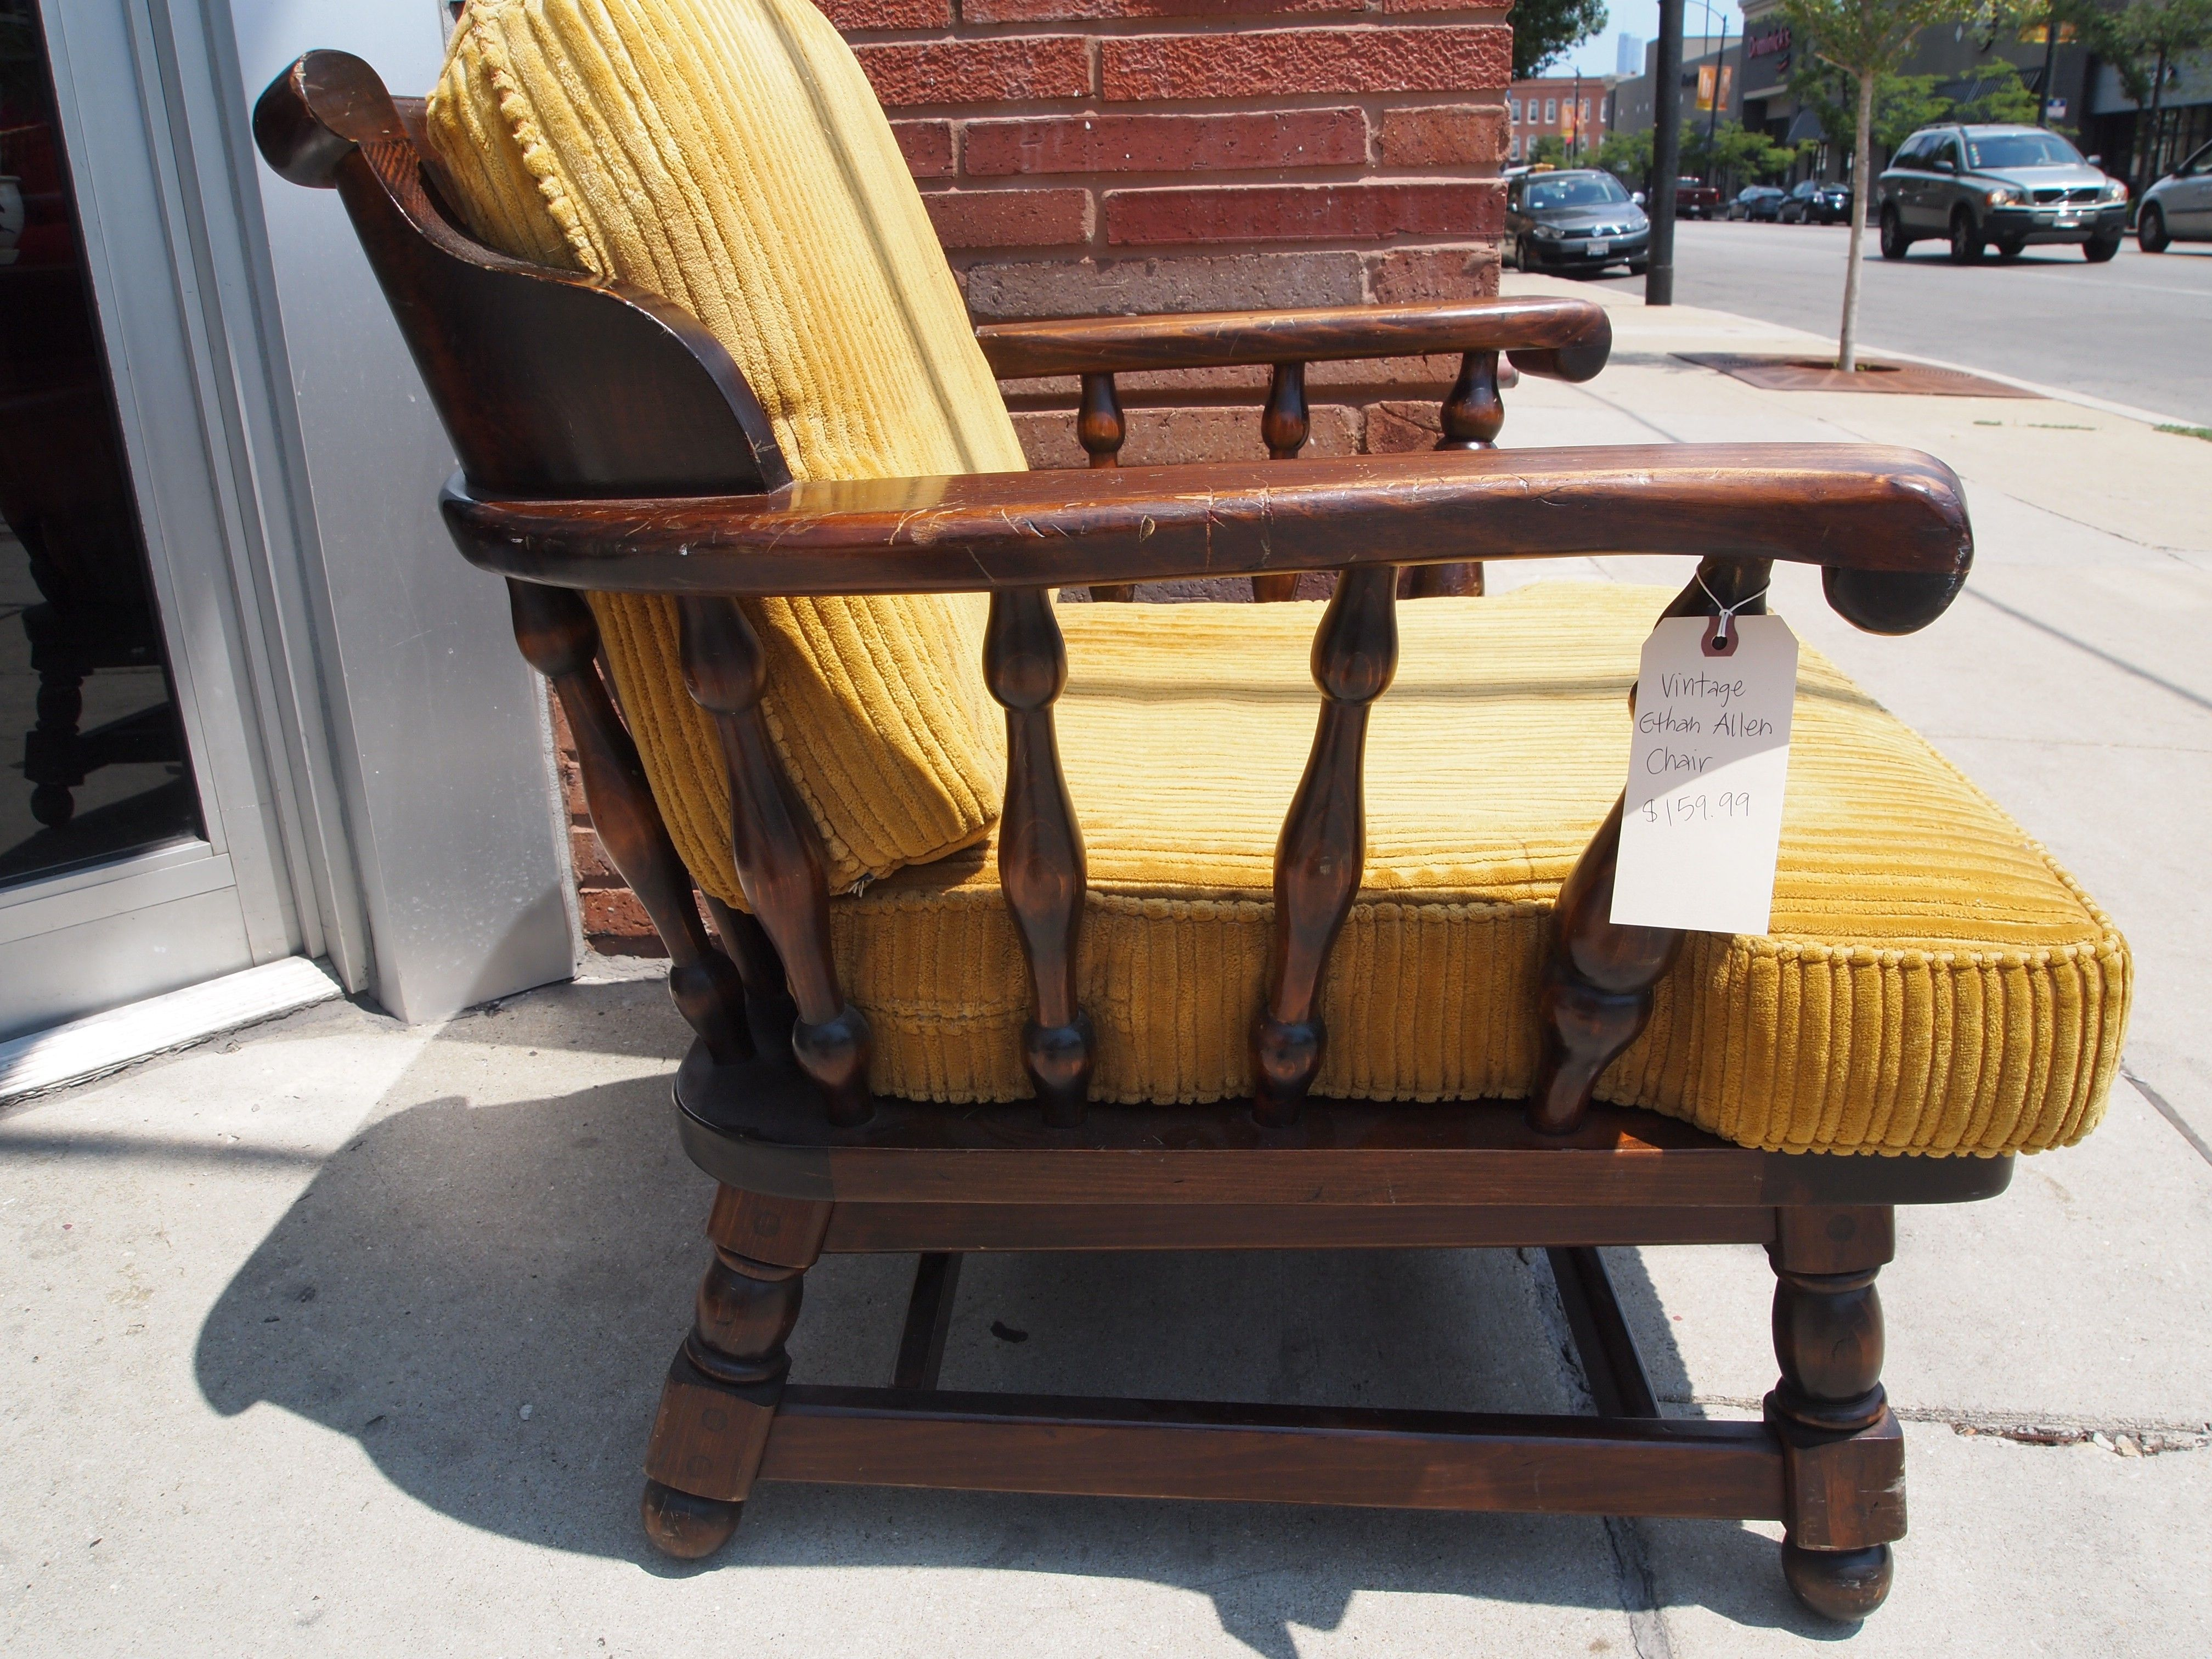 Pin By Marisa Saucedo On Galeria Ctr Ethan Allen Vintage Chair